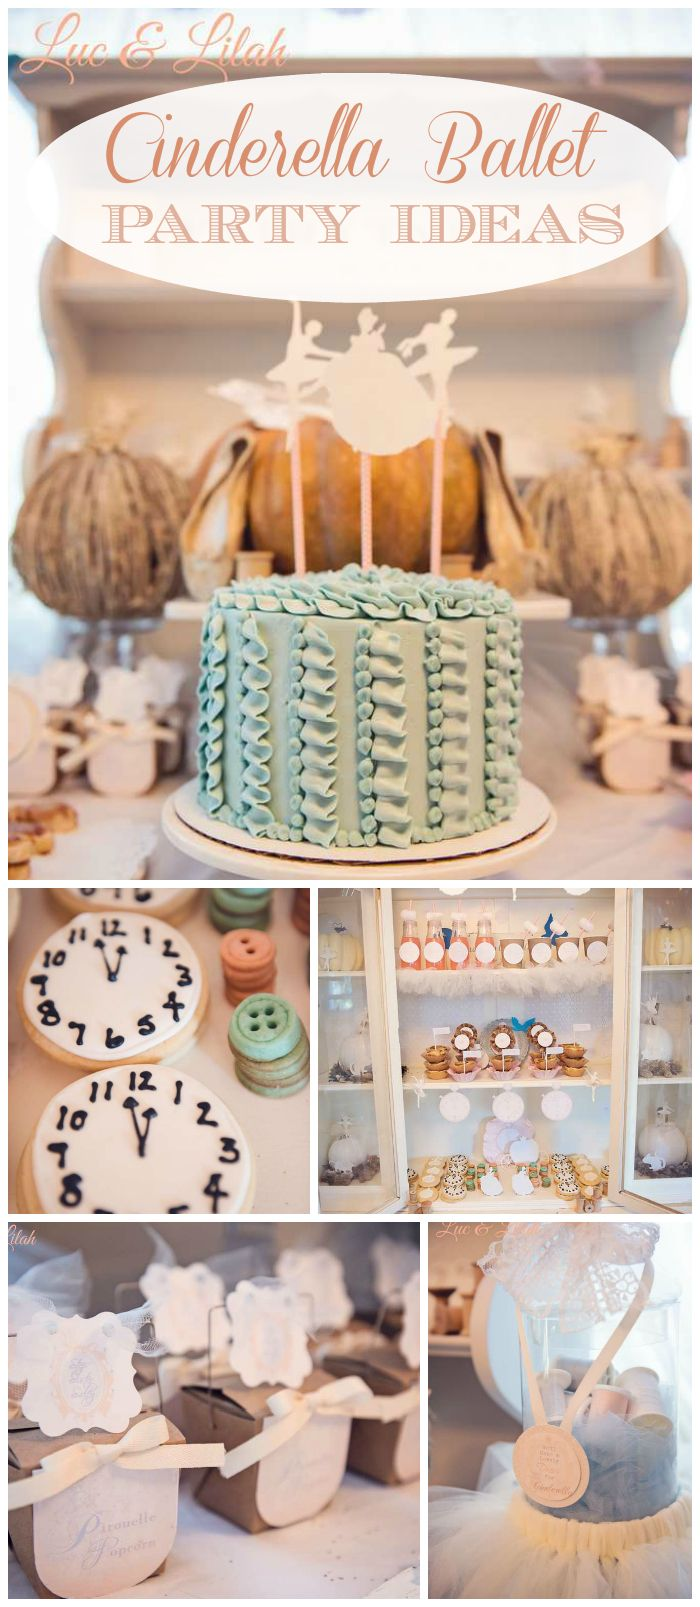 A Cinderella ballet girl birthday party with enchanted pumpkins, twirling ballerinas, and vintage spools! See more party planning ideas at CatchMyParty.com!